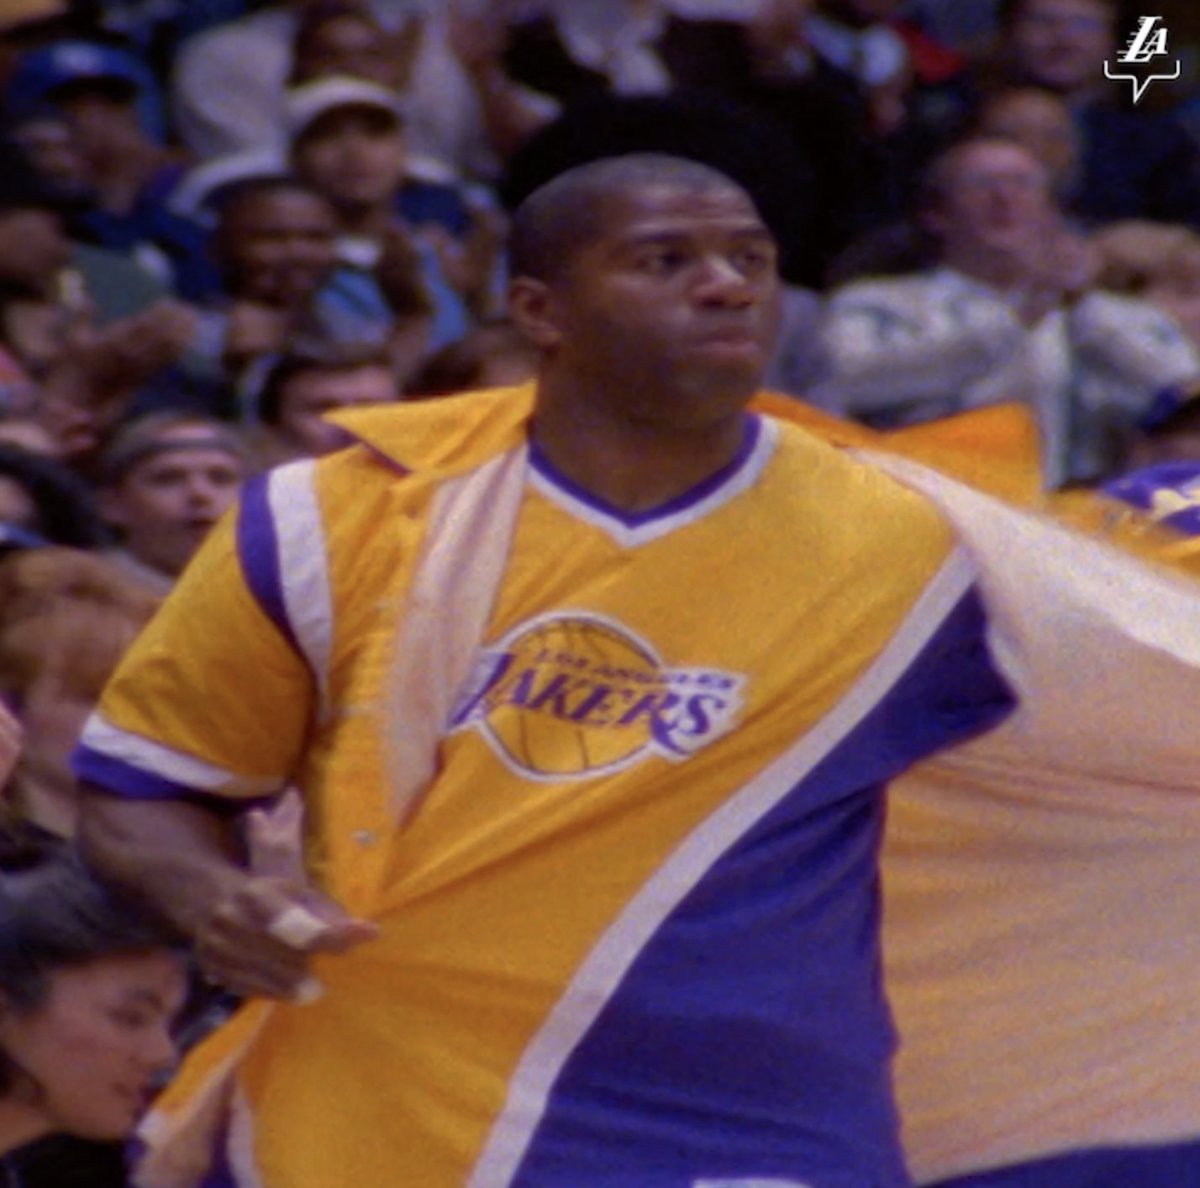 Five years after his retirement, Magic Johnson returns and catches em with a *filthy* pass-fake. #BestOfLakersWarriors